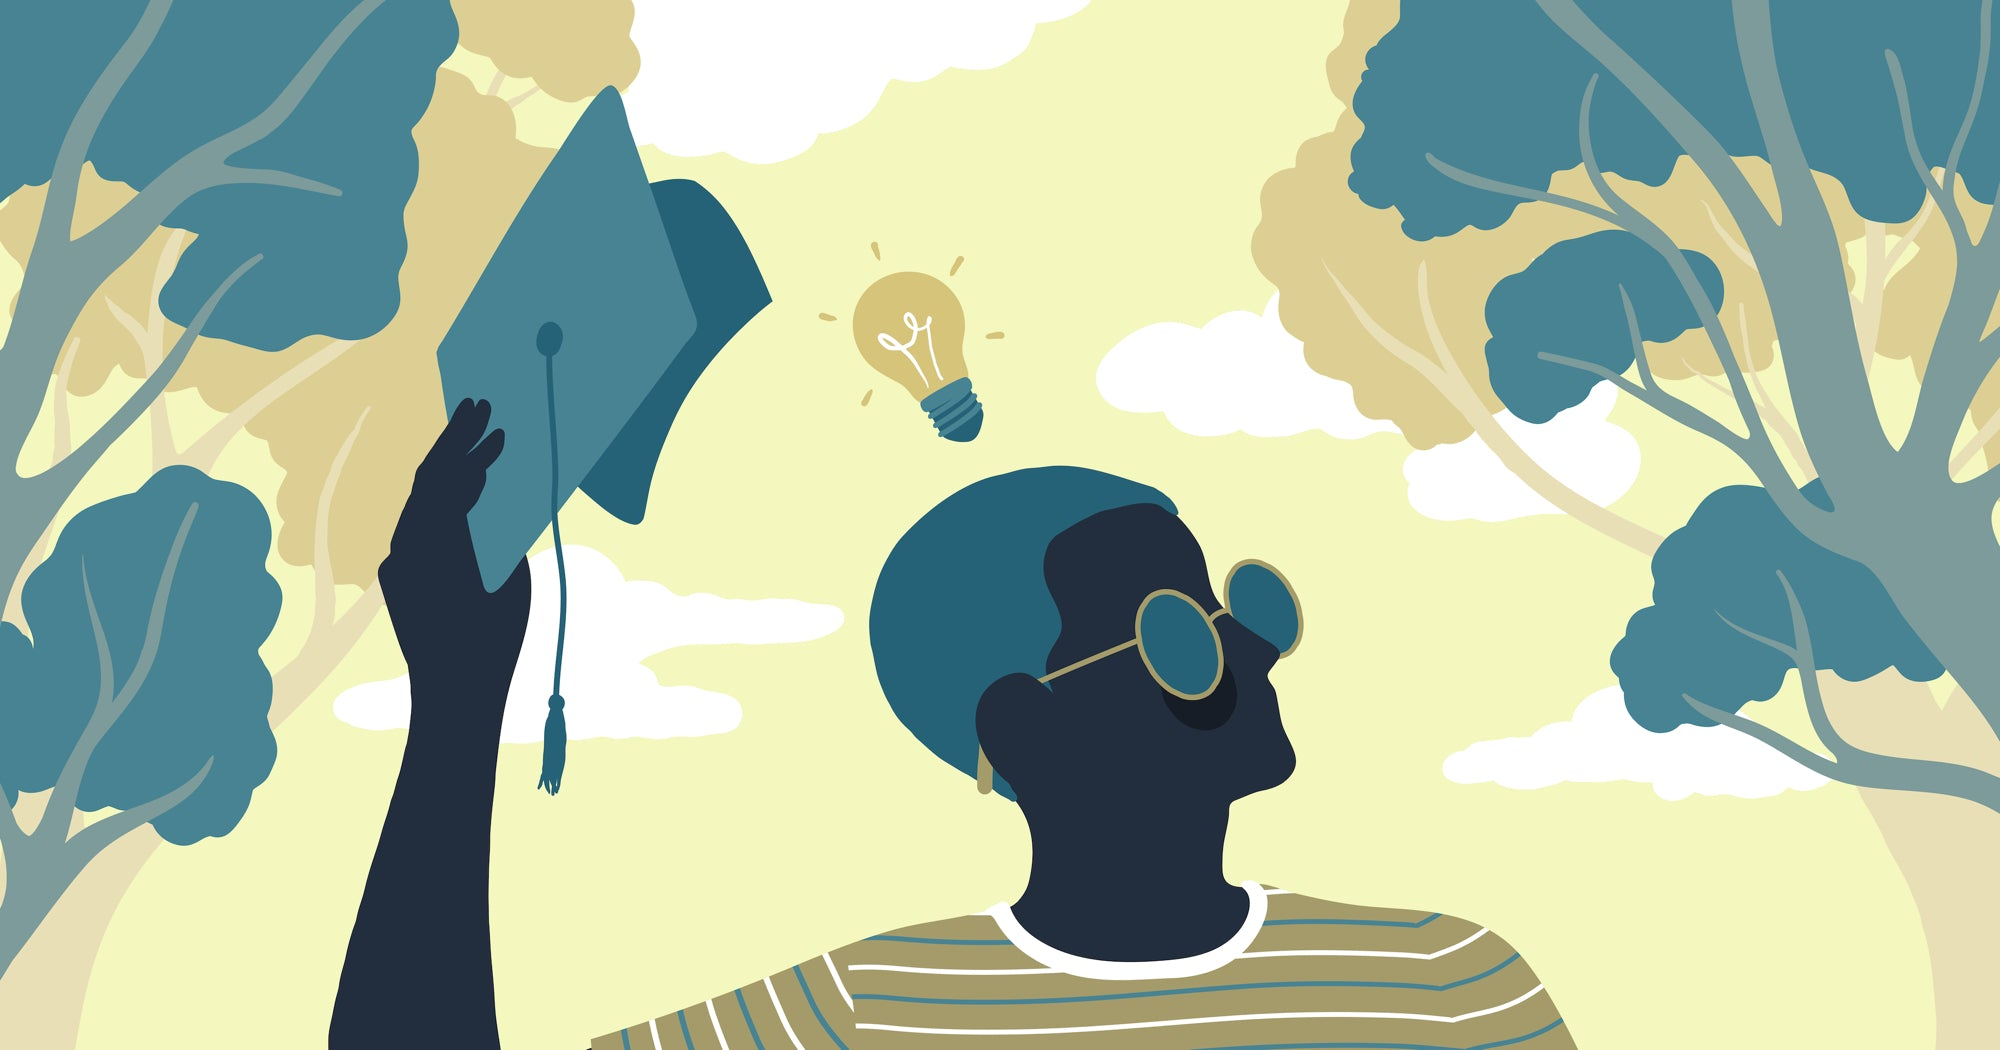 Illustration of a college student lifting a graduation cap to reveal an idea light bulb